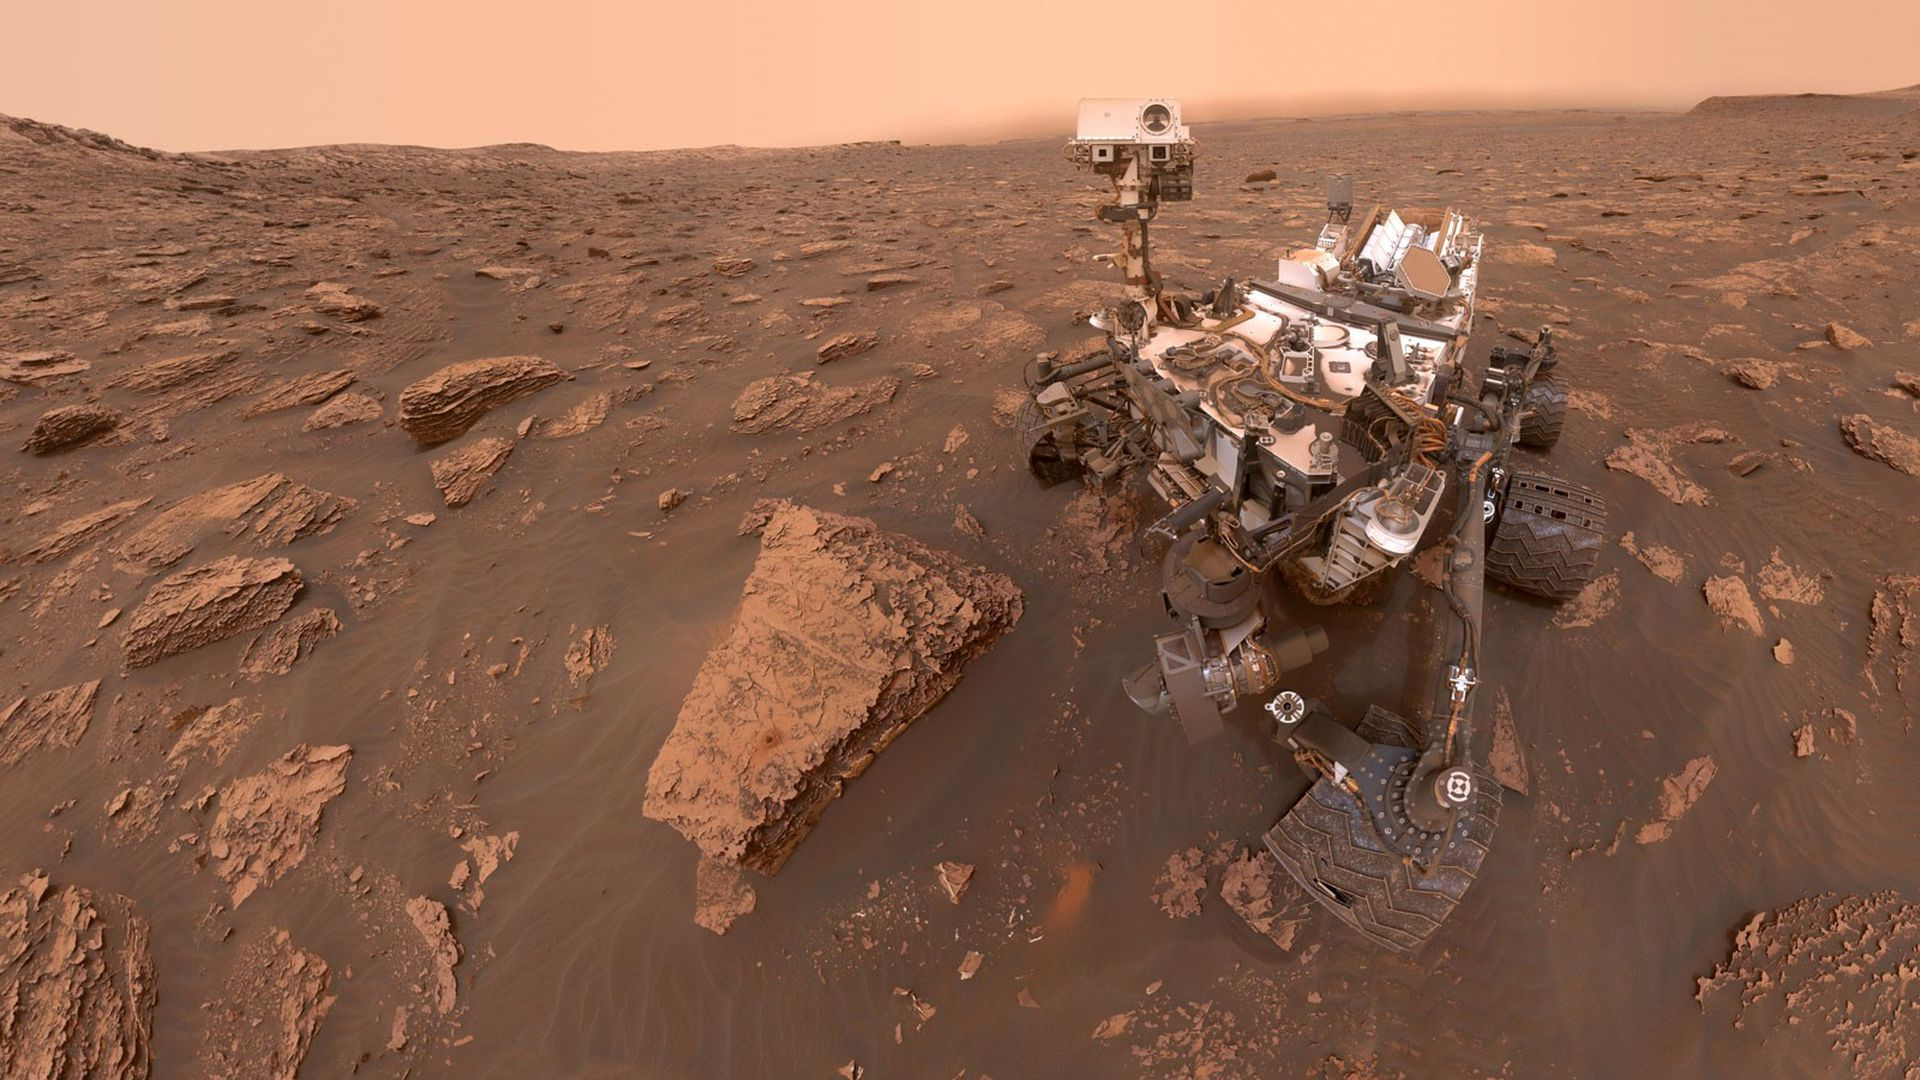 NASA's Curiosity rover in Mars in 2018